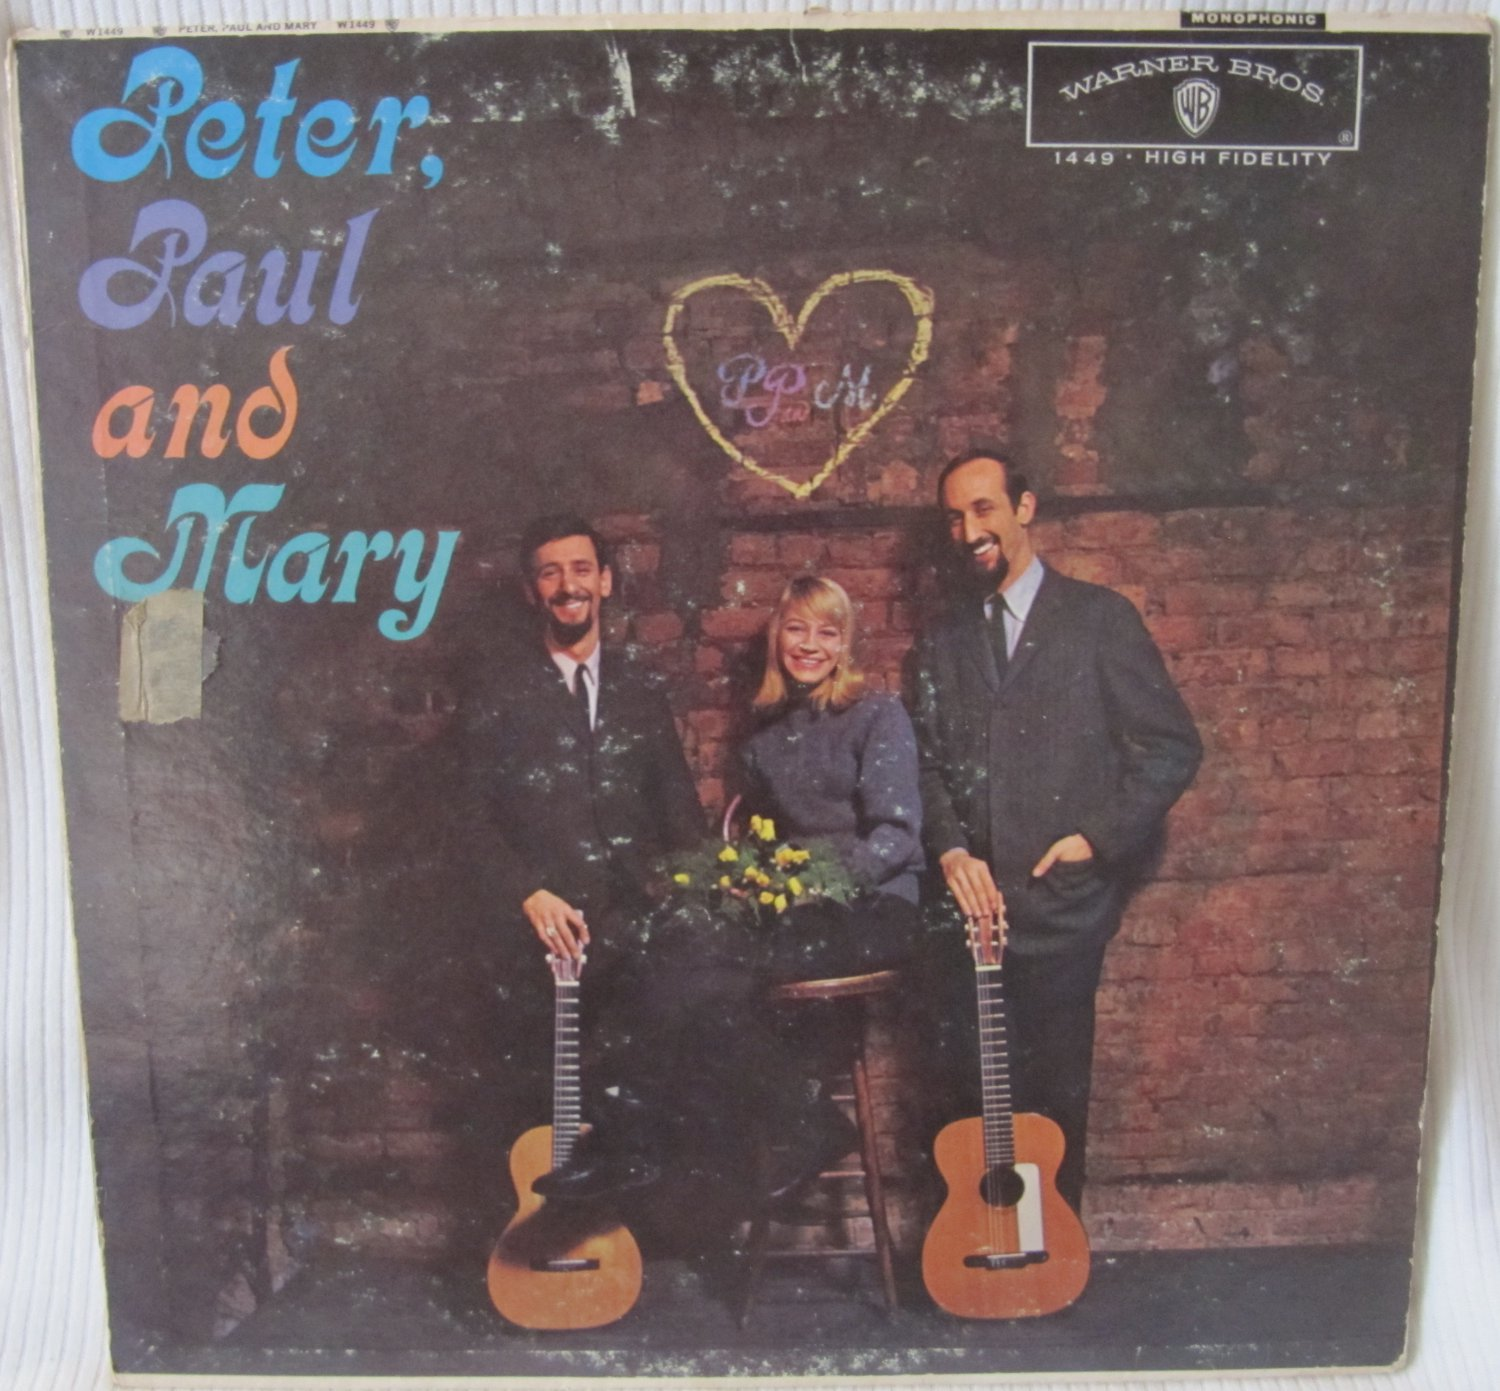 Peter, Paul and Mary Warner W 1449 Mono Original 1962 LP Record Album Vinyl